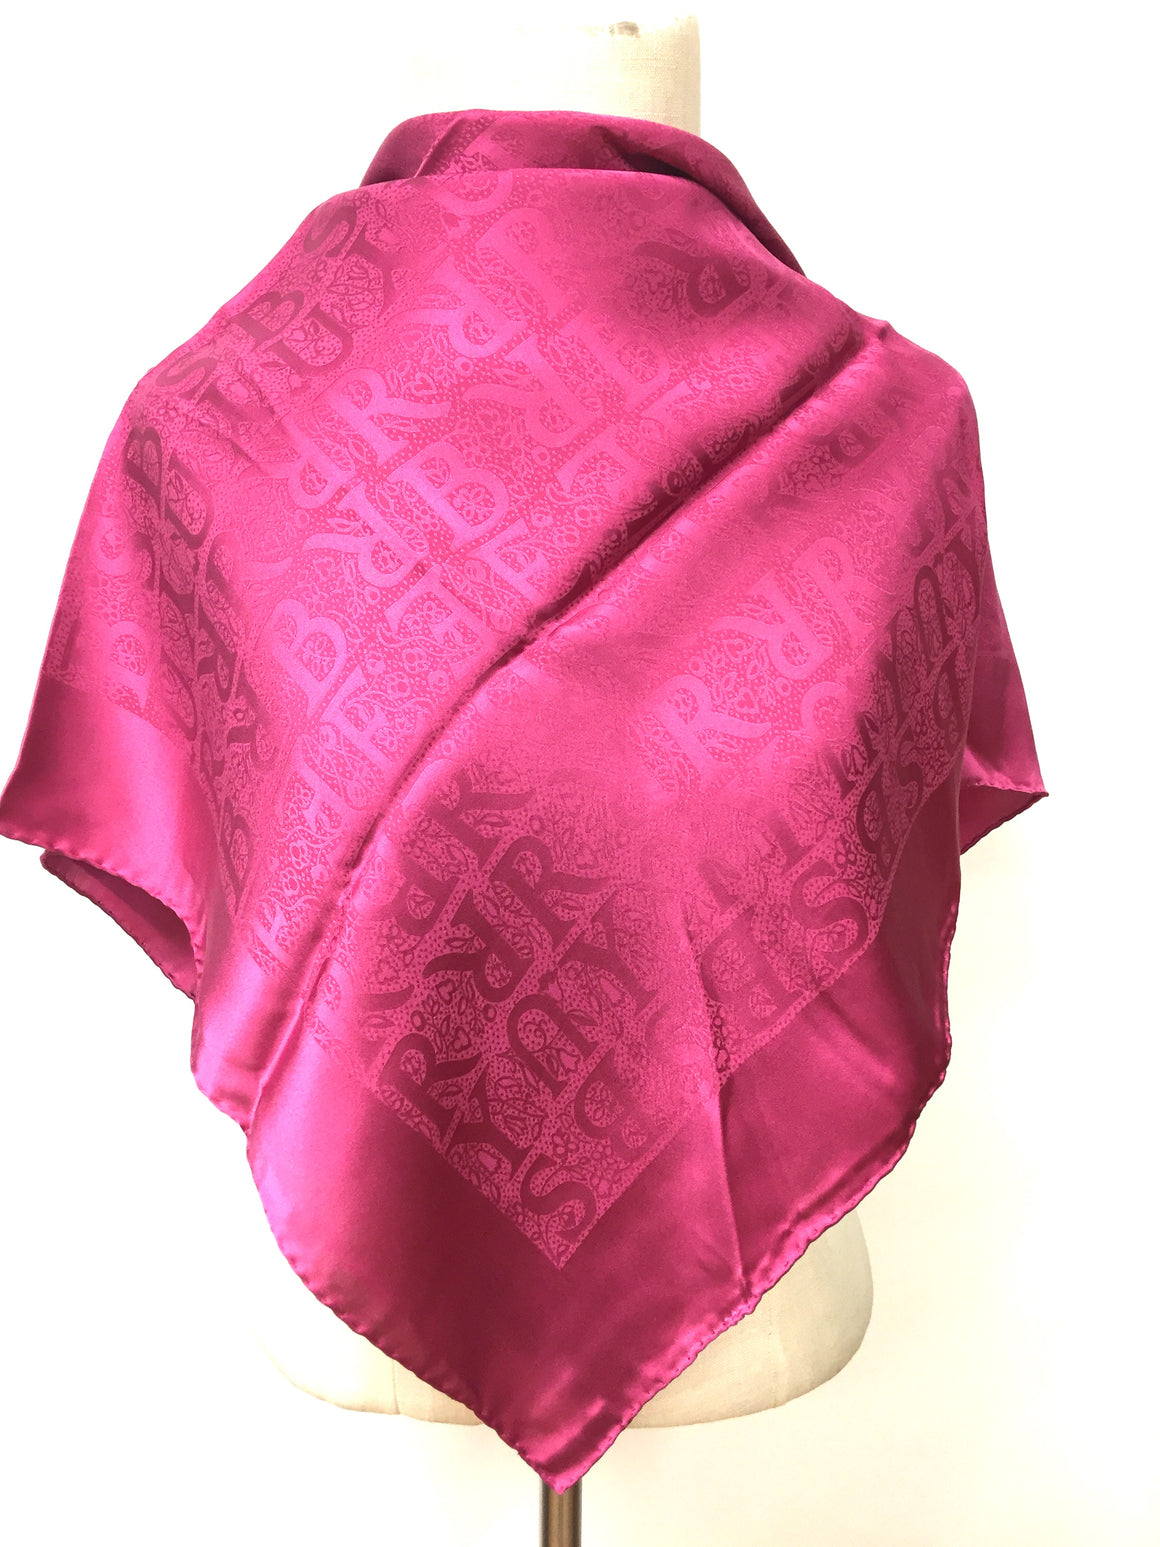 BURBERRY New Fuchsia Logo-Patterned Silk Jacquard Scarf / Shawl